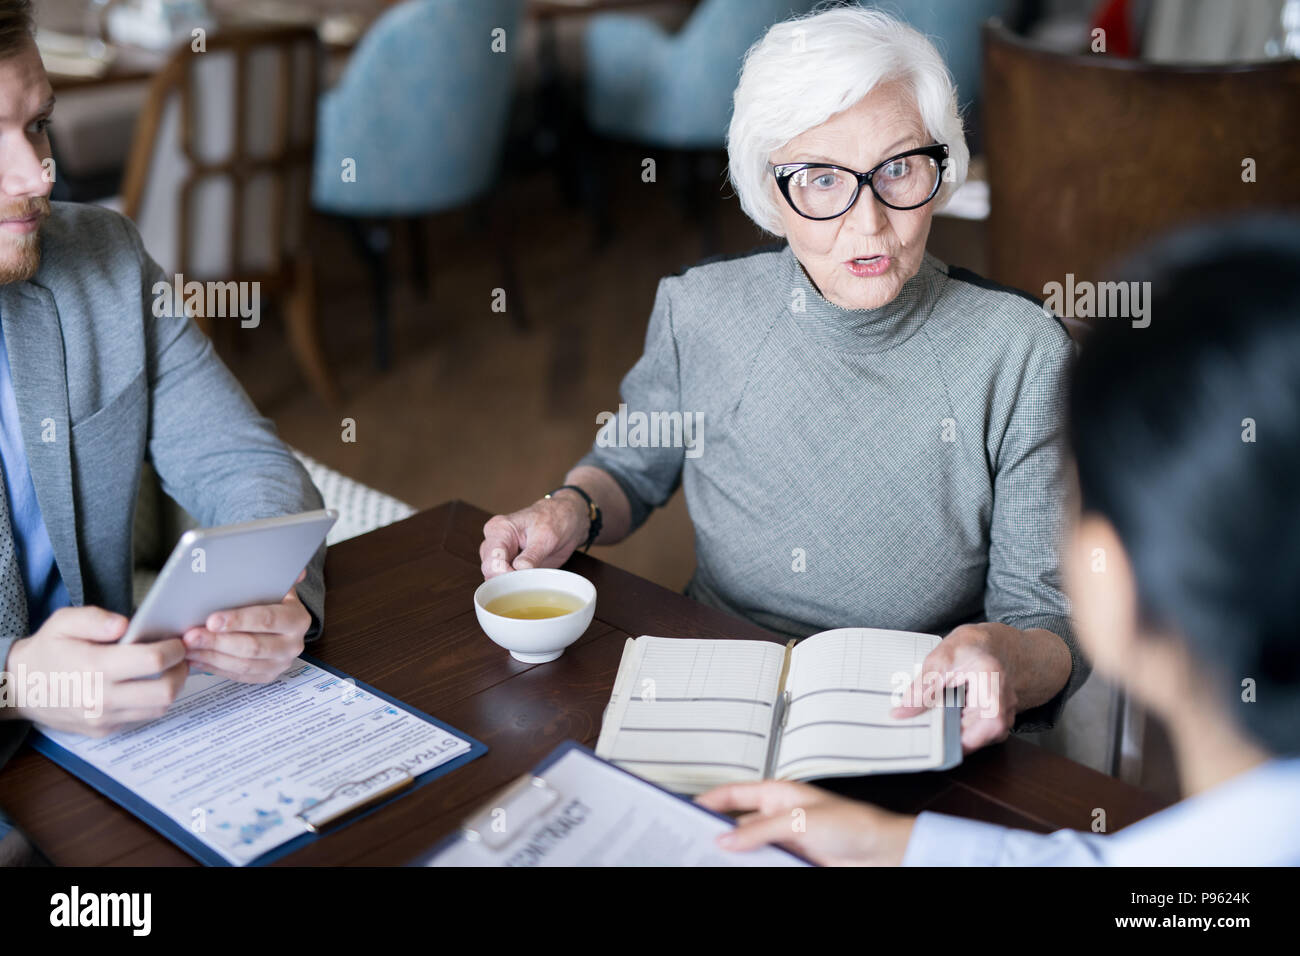 Female leader gives orders - Stock Image